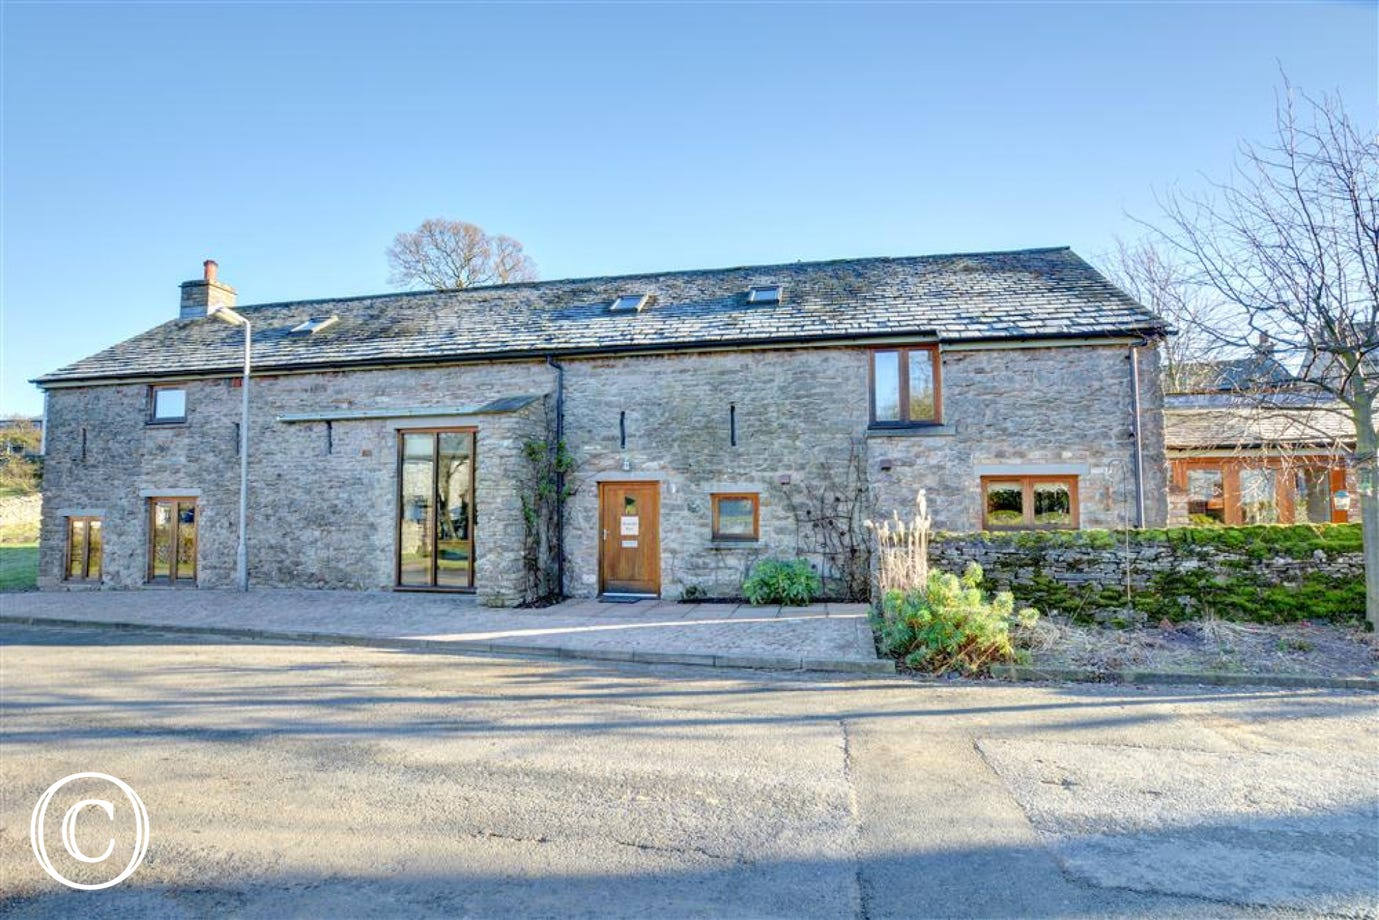 The property has been stunningly renovated, making it an ideal holiday home from home.